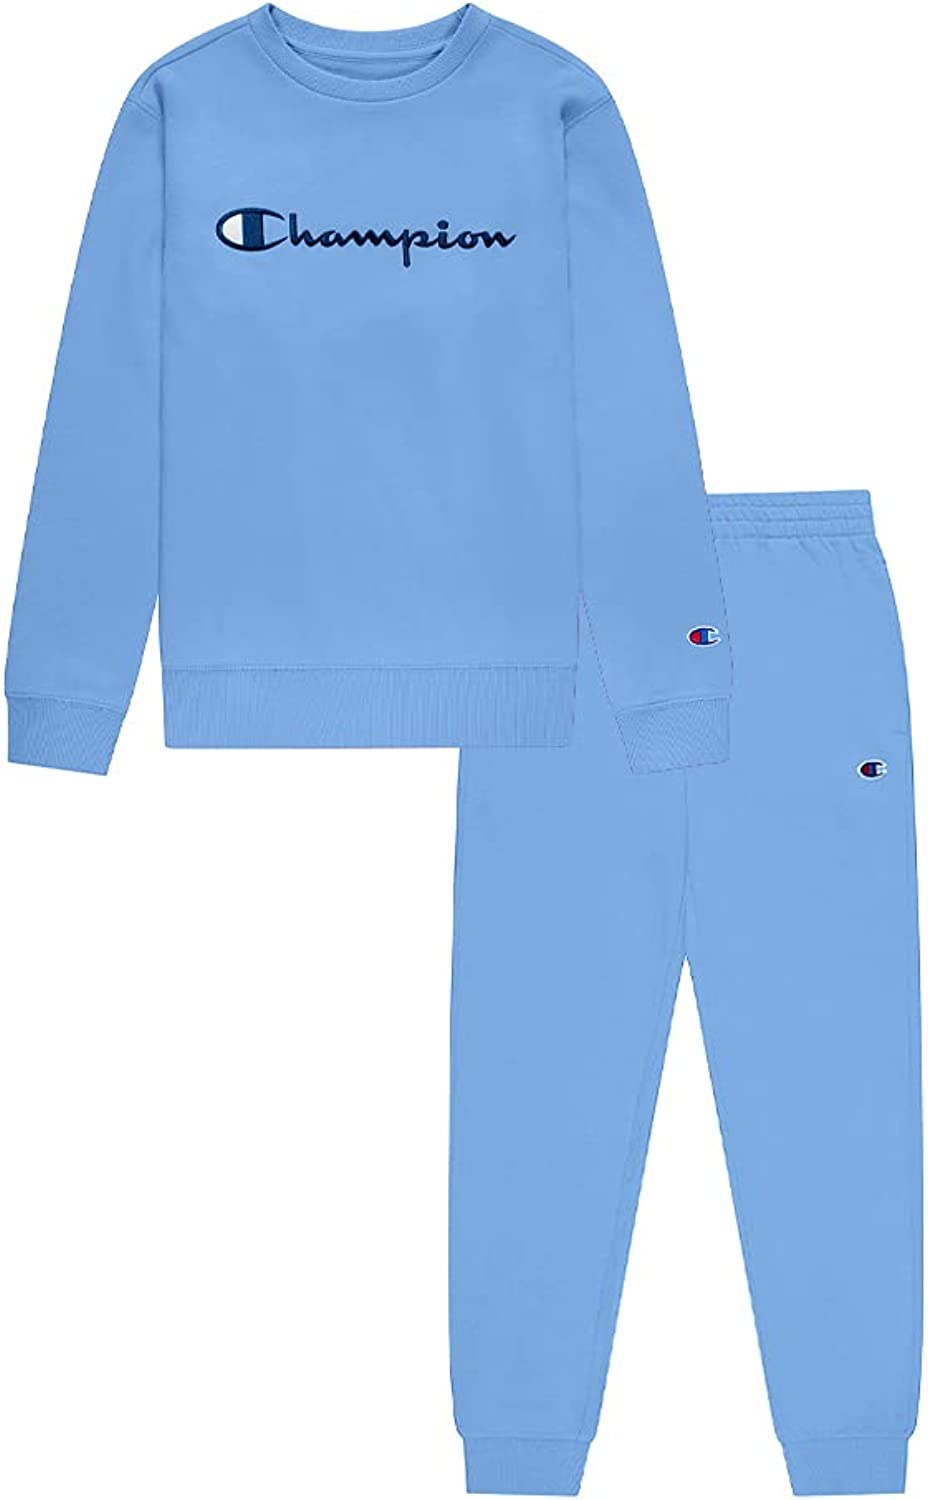 Champion Boys Two Piece Classic Core Colors Hooded And Crewneck Sweatshirt And Fleece Jogger Sweatpants Infant Toddler Sets